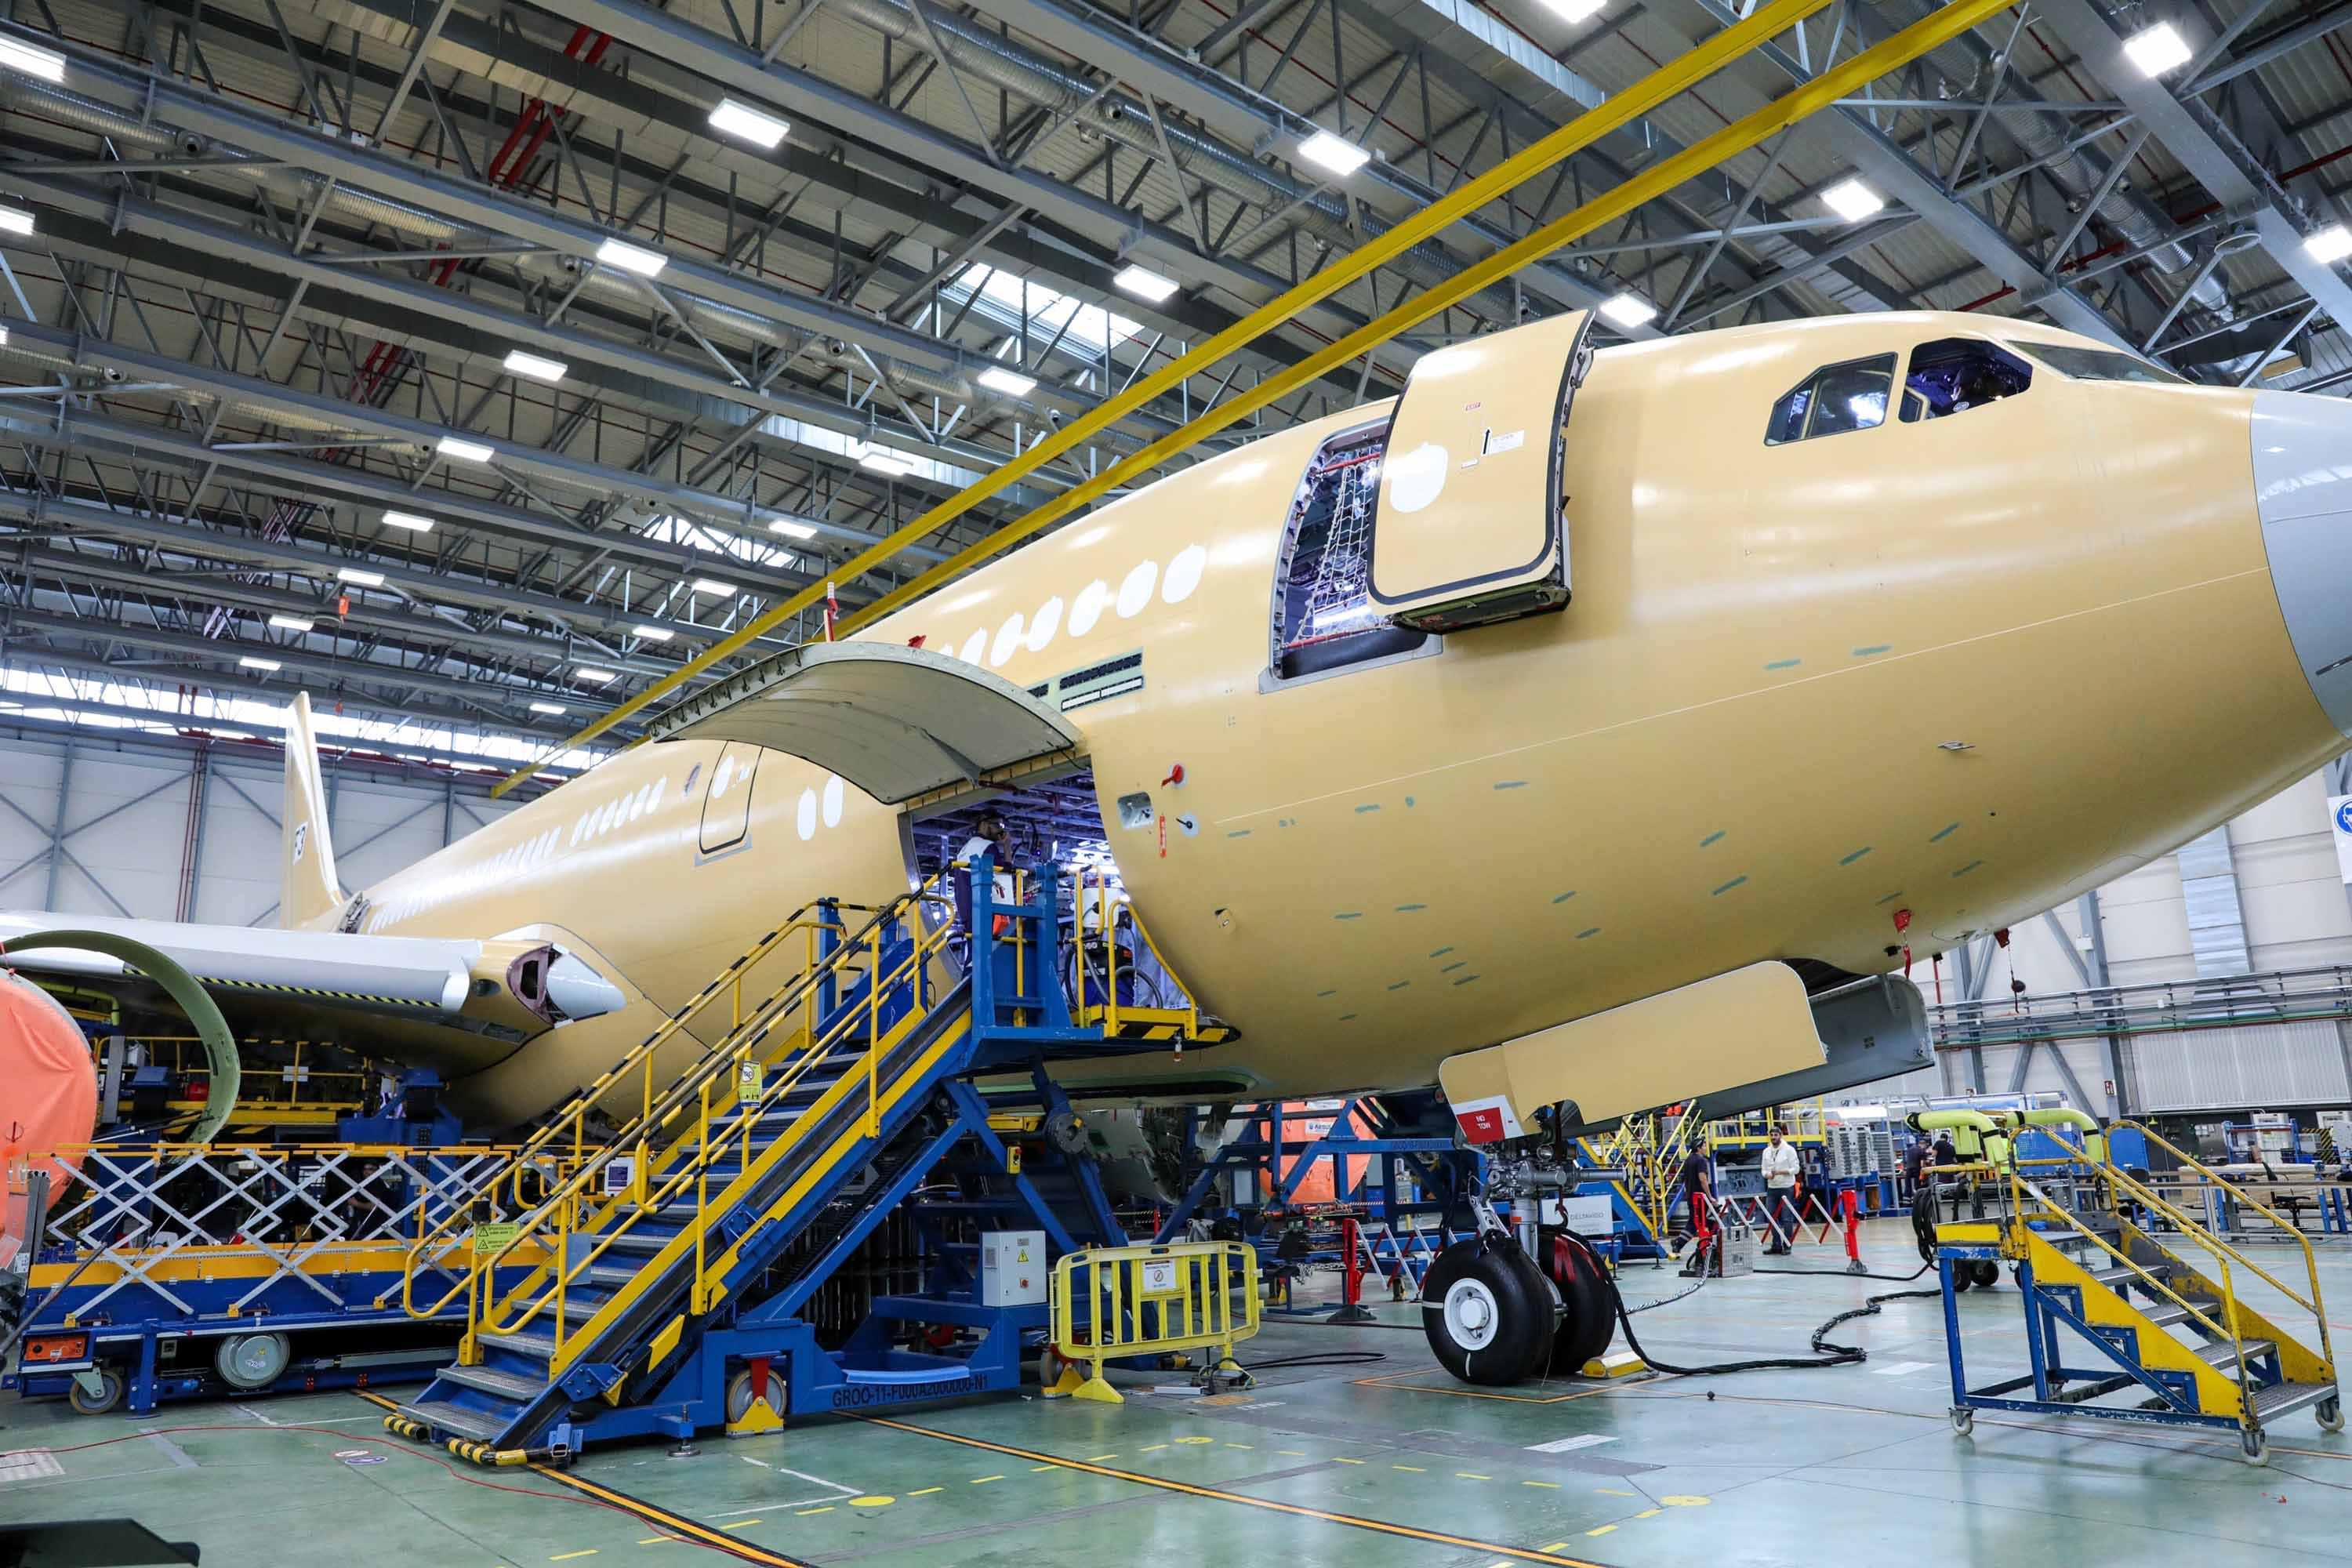 Maintenance work is carried out on an Airbus aircraft at a plant near Madrid, Spain, in November 2019.